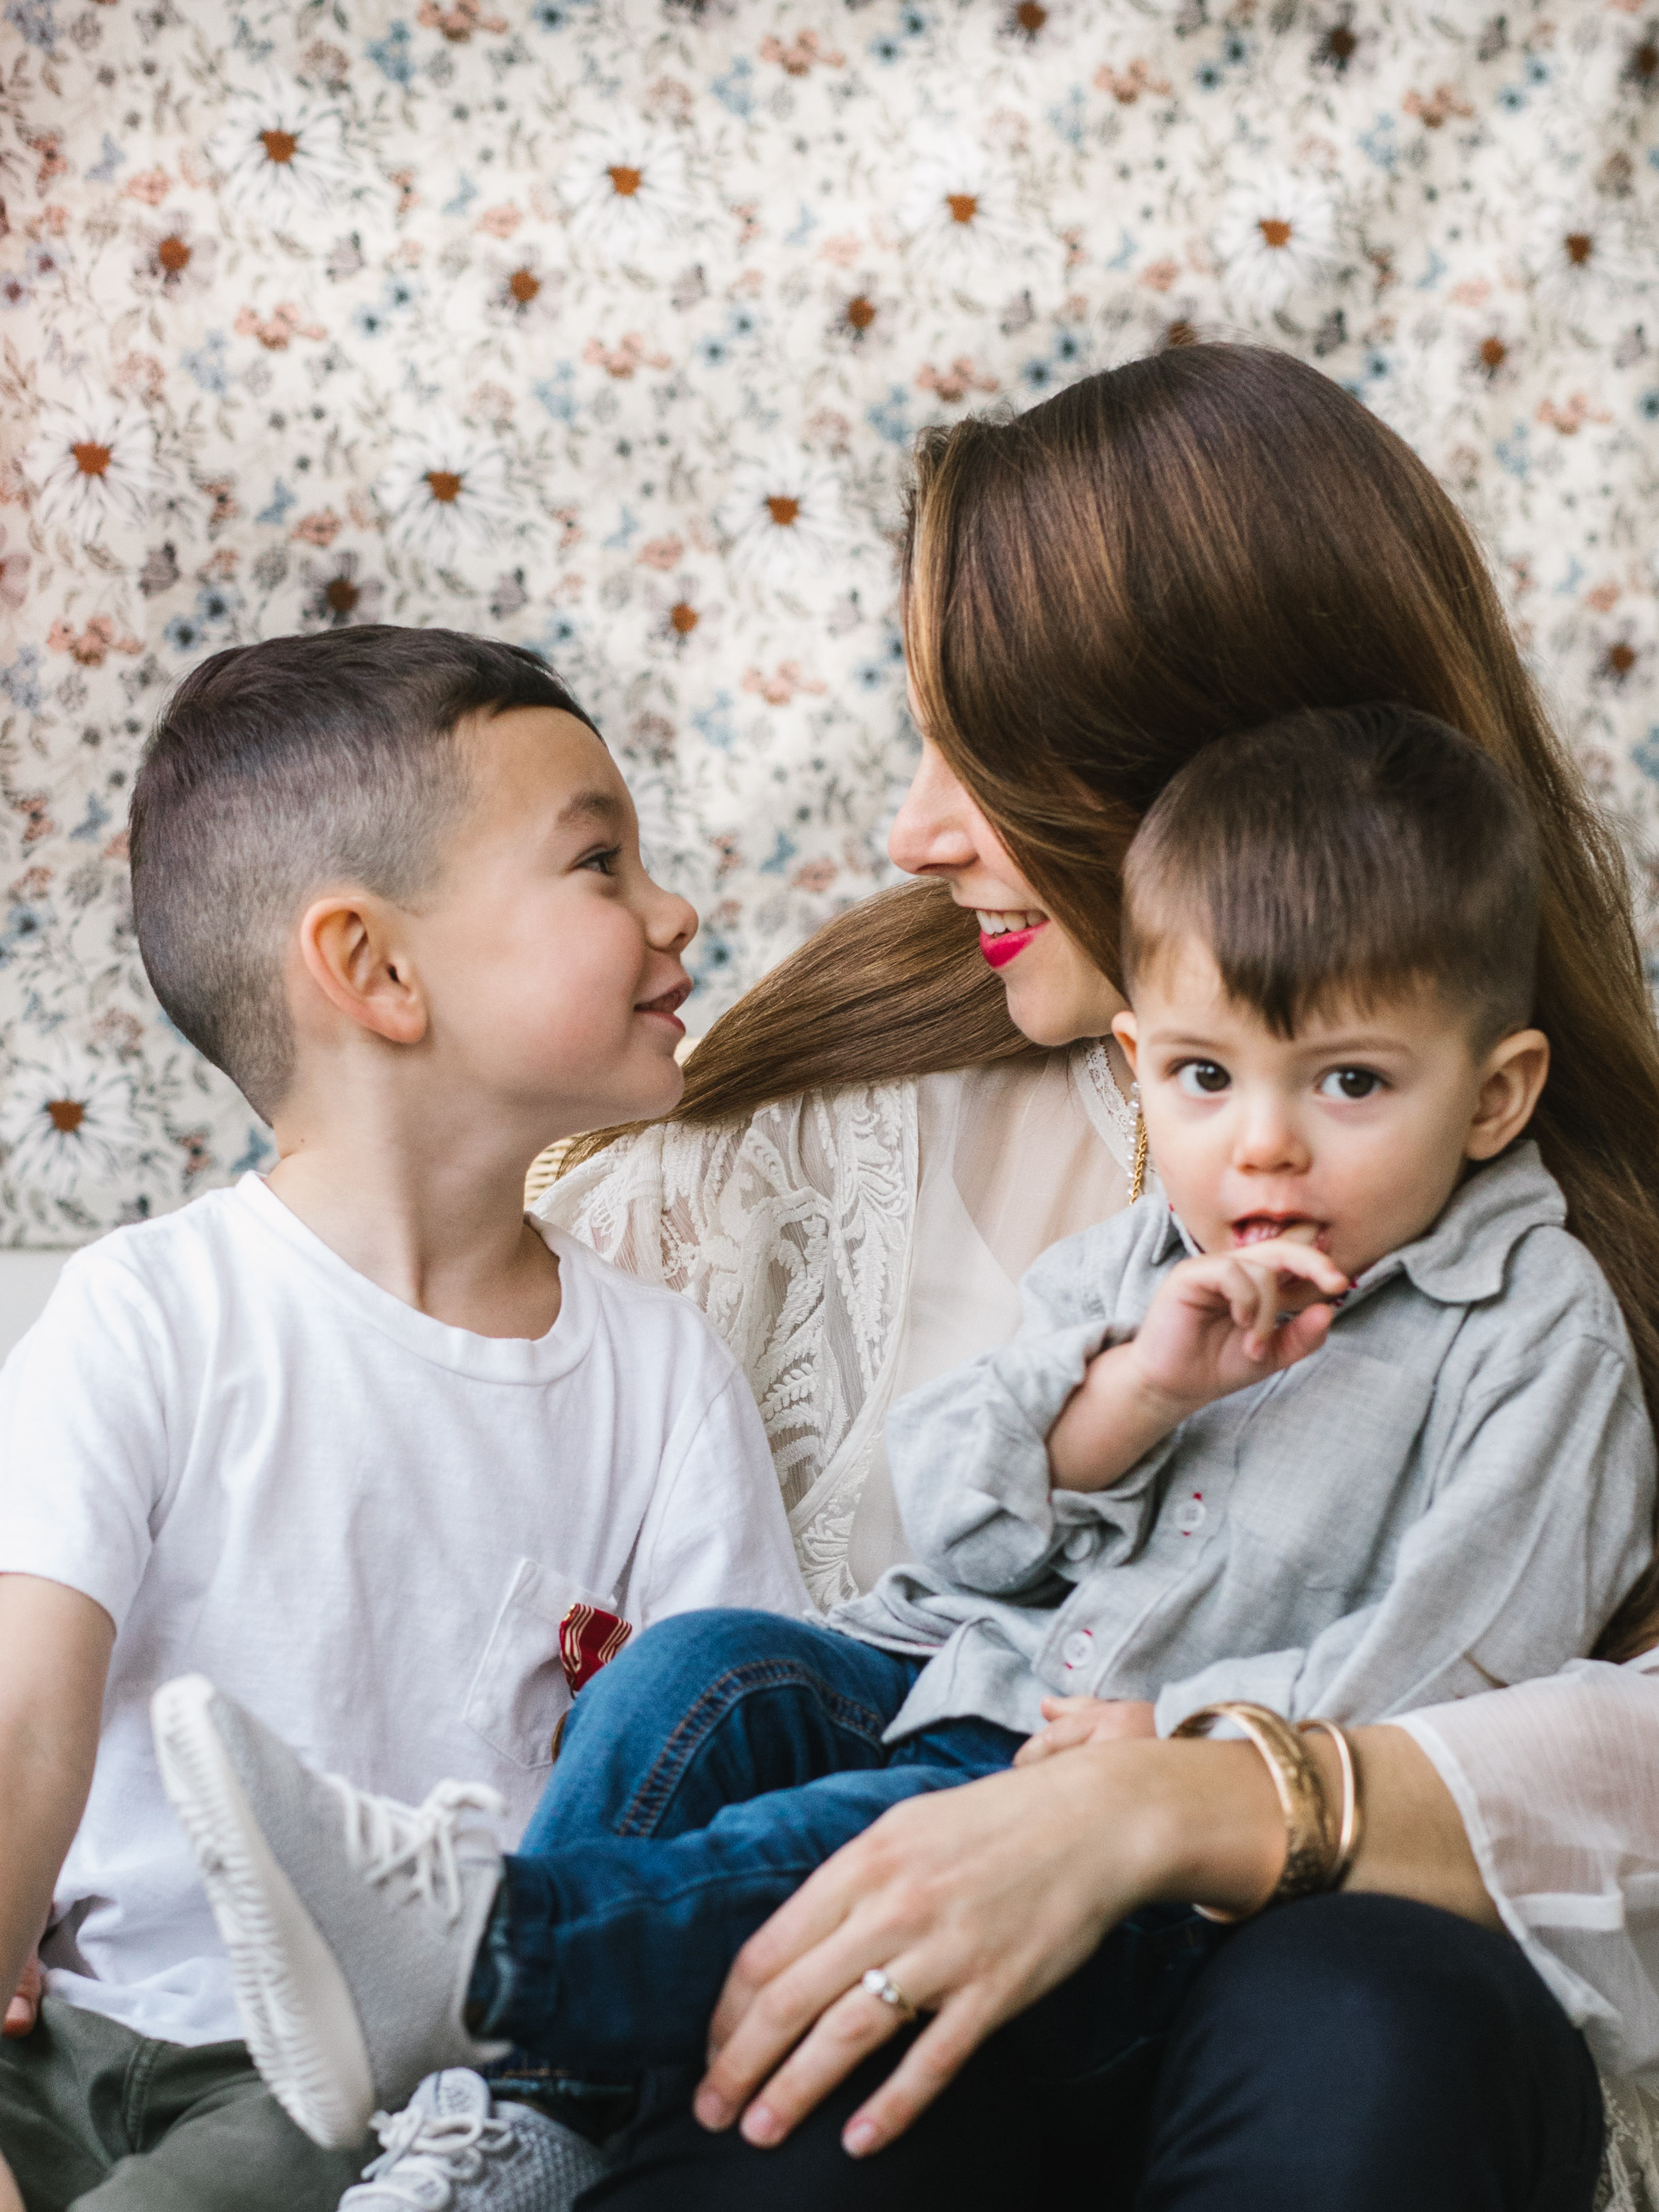 Beautiful intimate authentic mother and children seattle family photography session by Chelesea Macor Photography-6.jpg